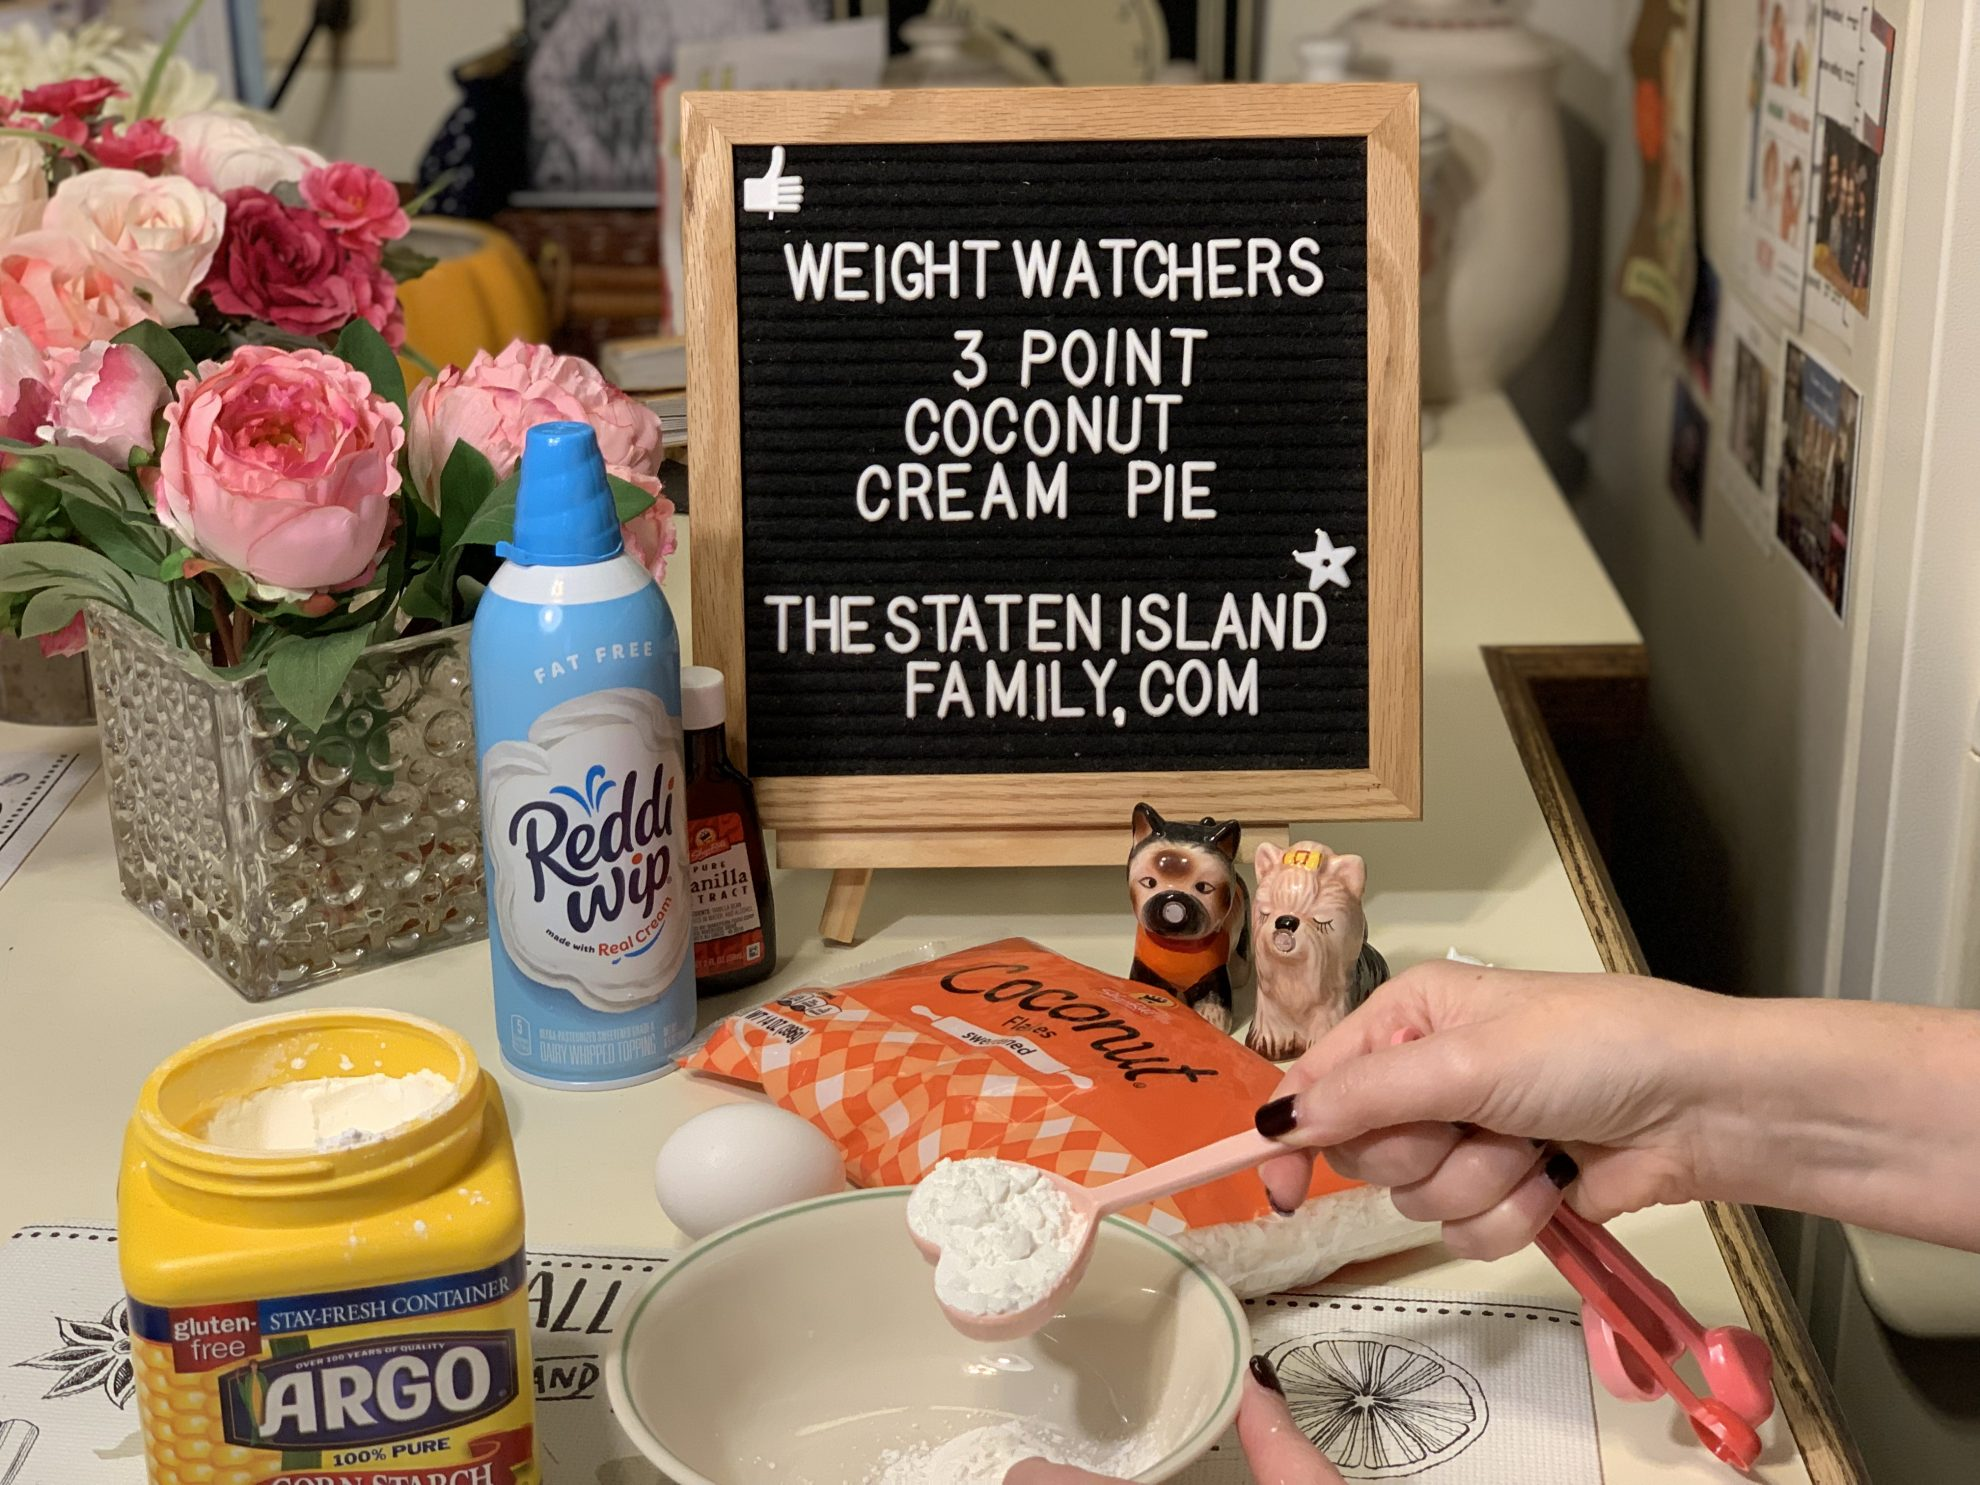 this Weight Watchers Coconut Cream Pie - is Just three points per serving (the entire pie makes 12) it is delicious and decadent! https://www.thestatenislandfamily.com/weight-watchers-coconut-cream-pie/